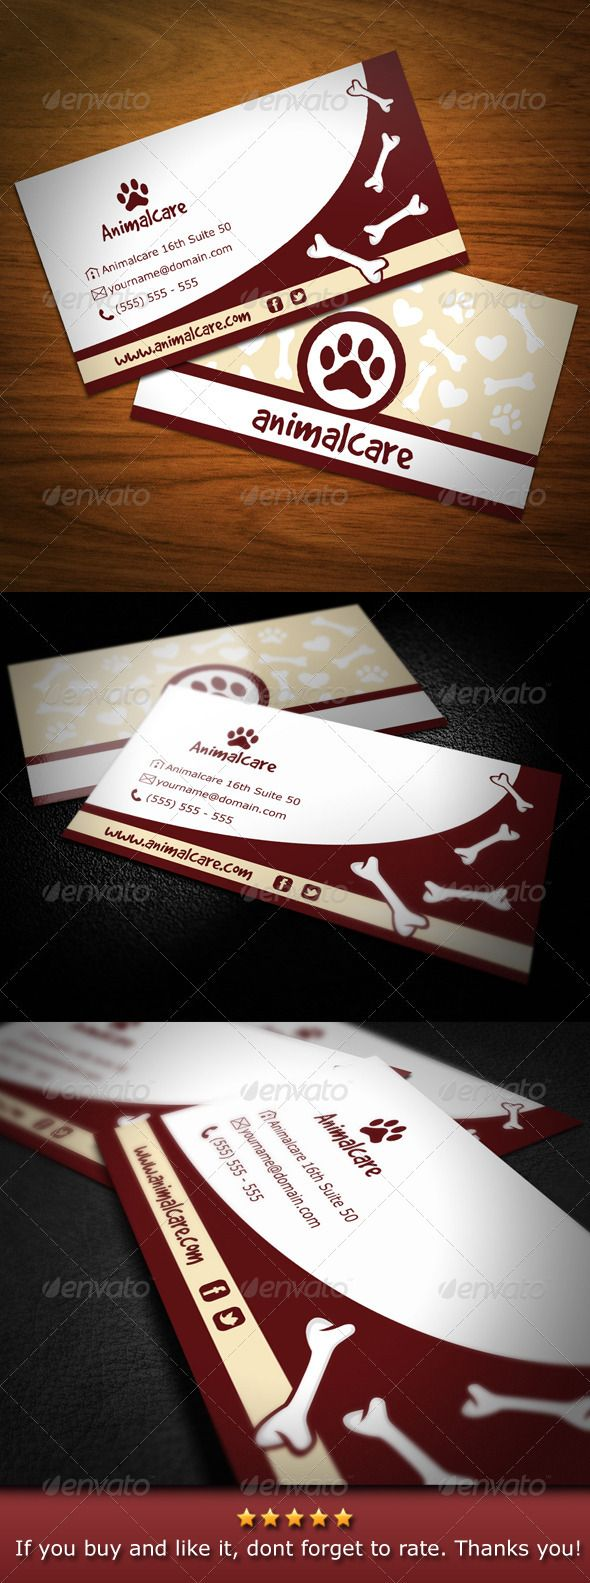 Animal Care Business Card   Animal care, Business cards and Business